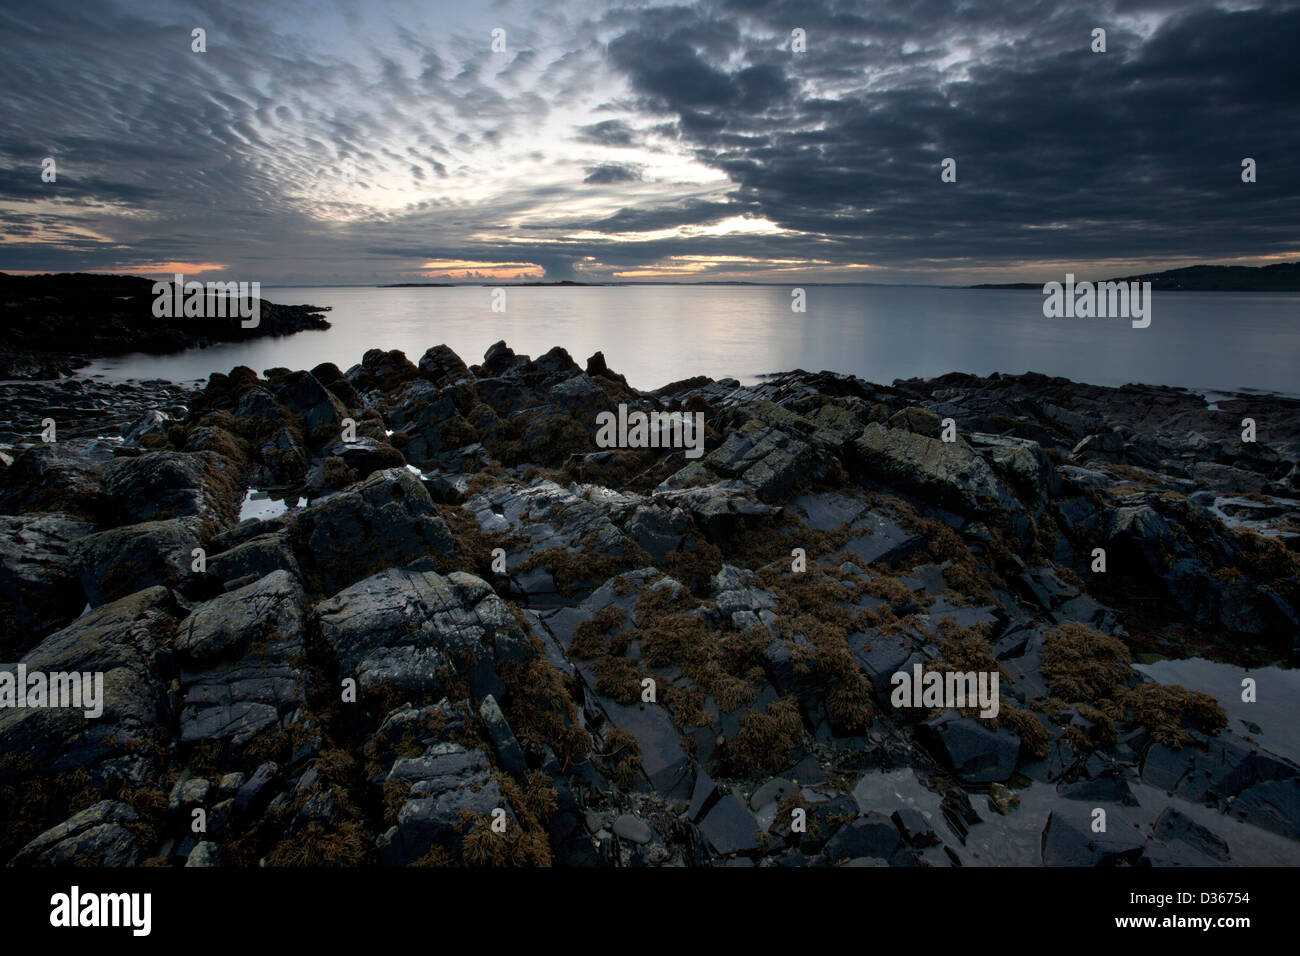 Carrick Shore, Dumfries and Galloway, Scotland - Stock Image